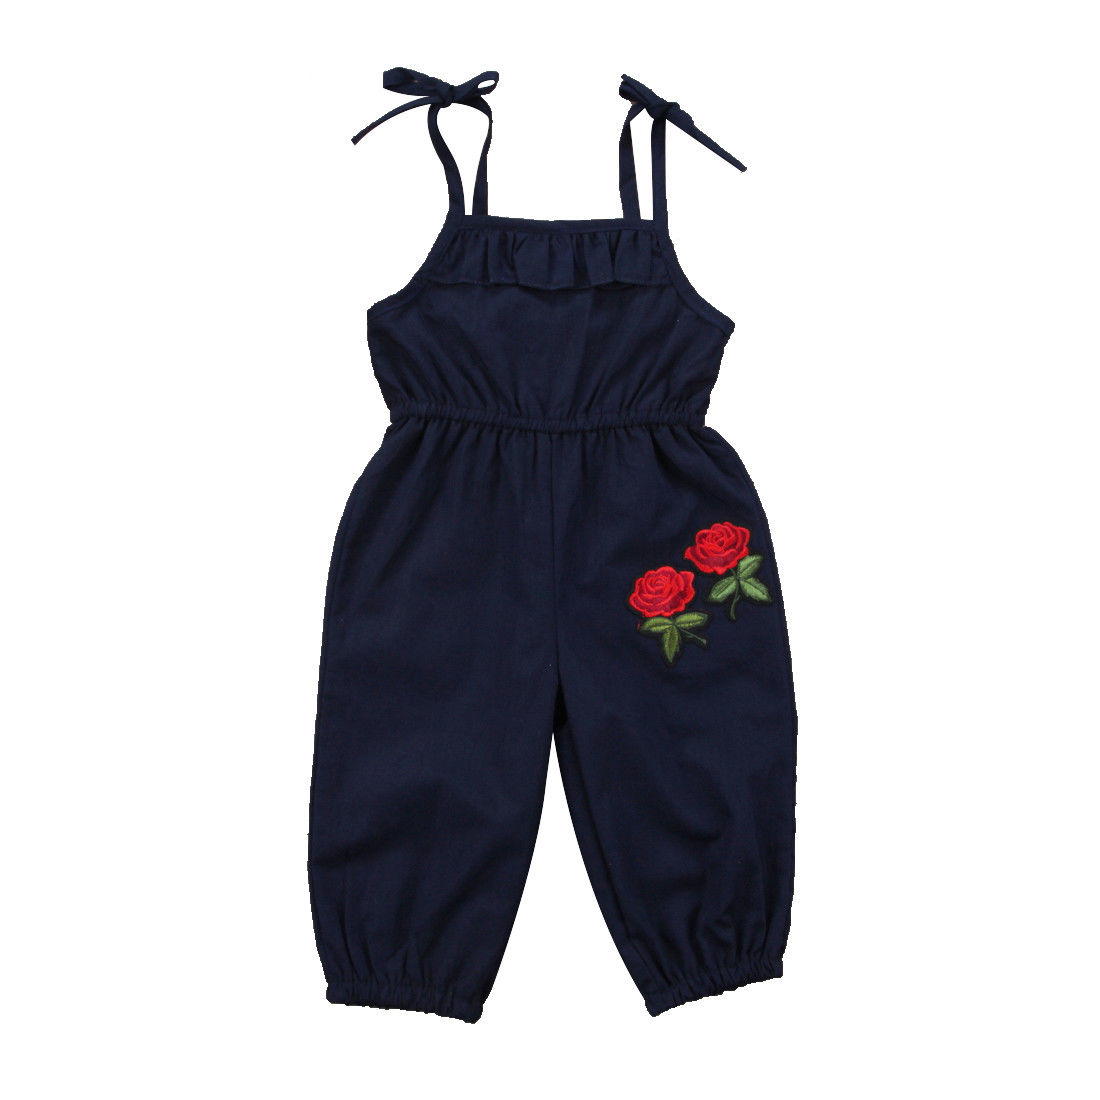 2018 New Brand Embroidery Toddler Infant Child Kids Girls Flower Romper Jumpsuit Playsuit Sleeveless Outfit Clothes 1-6T